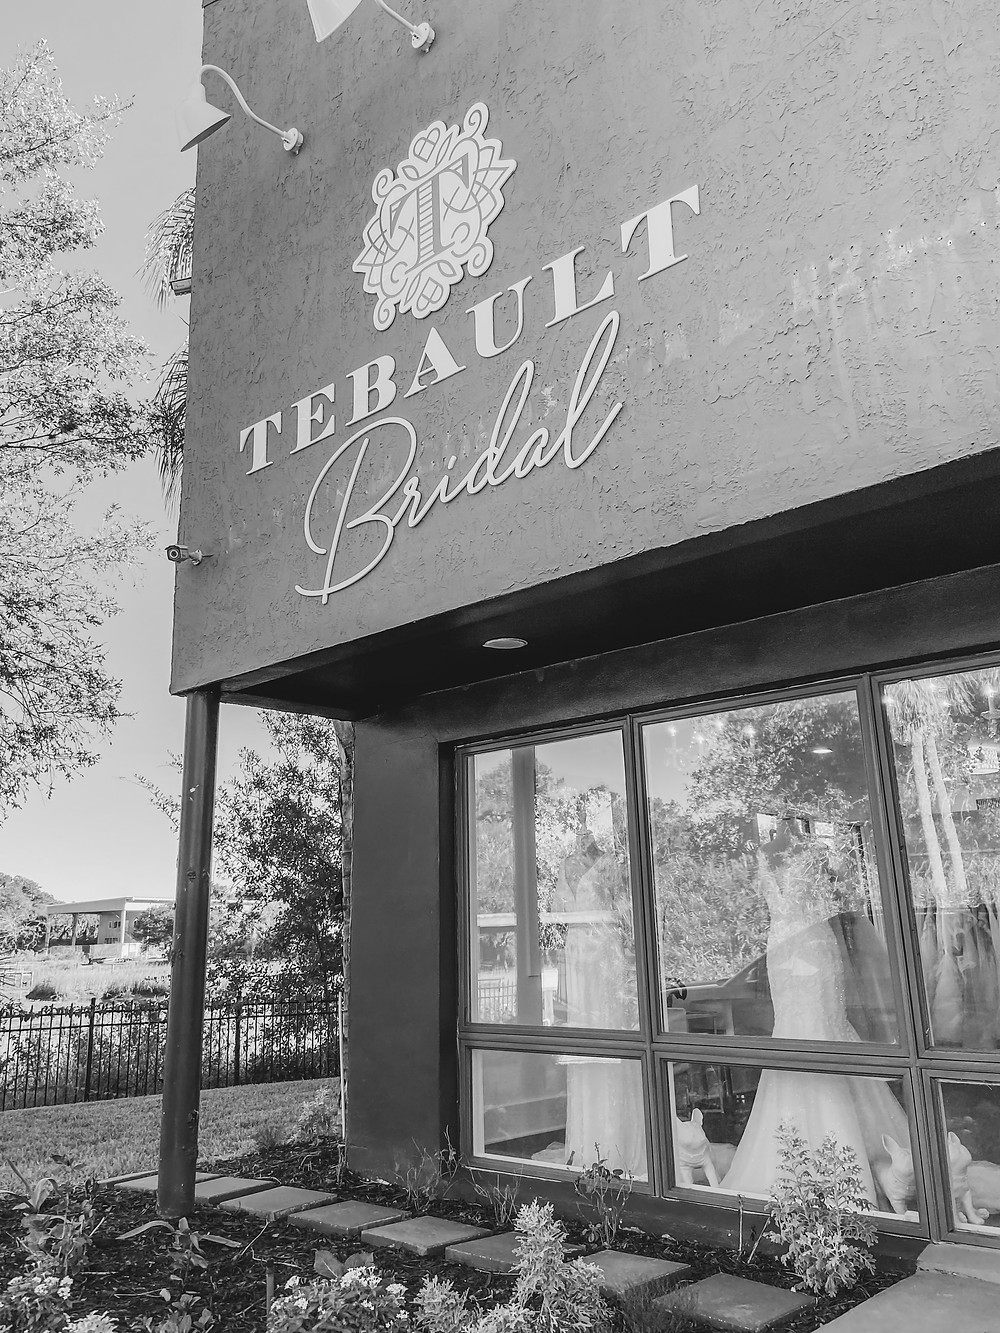 black and white photography of the wedding gown store location called tebault bridal in St. Augustine Florida